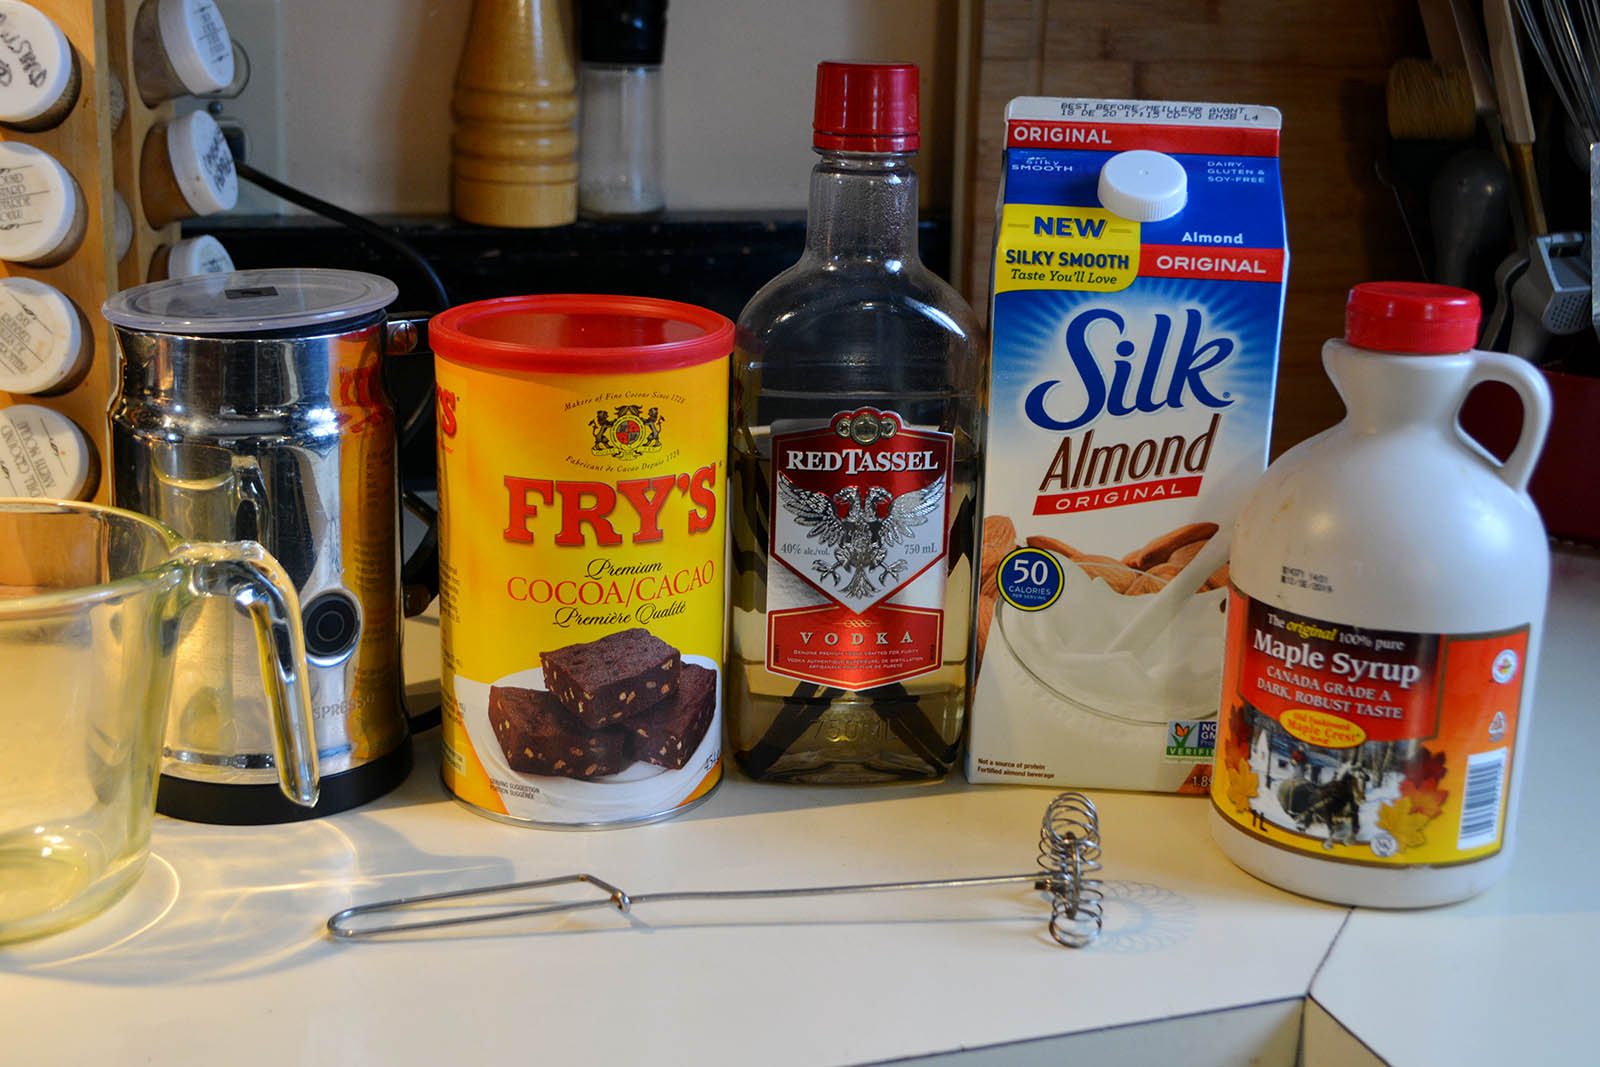 Ingredients for Dairy-Free Hot Chocolate. The vodka bottle is actually homemade vanilla.